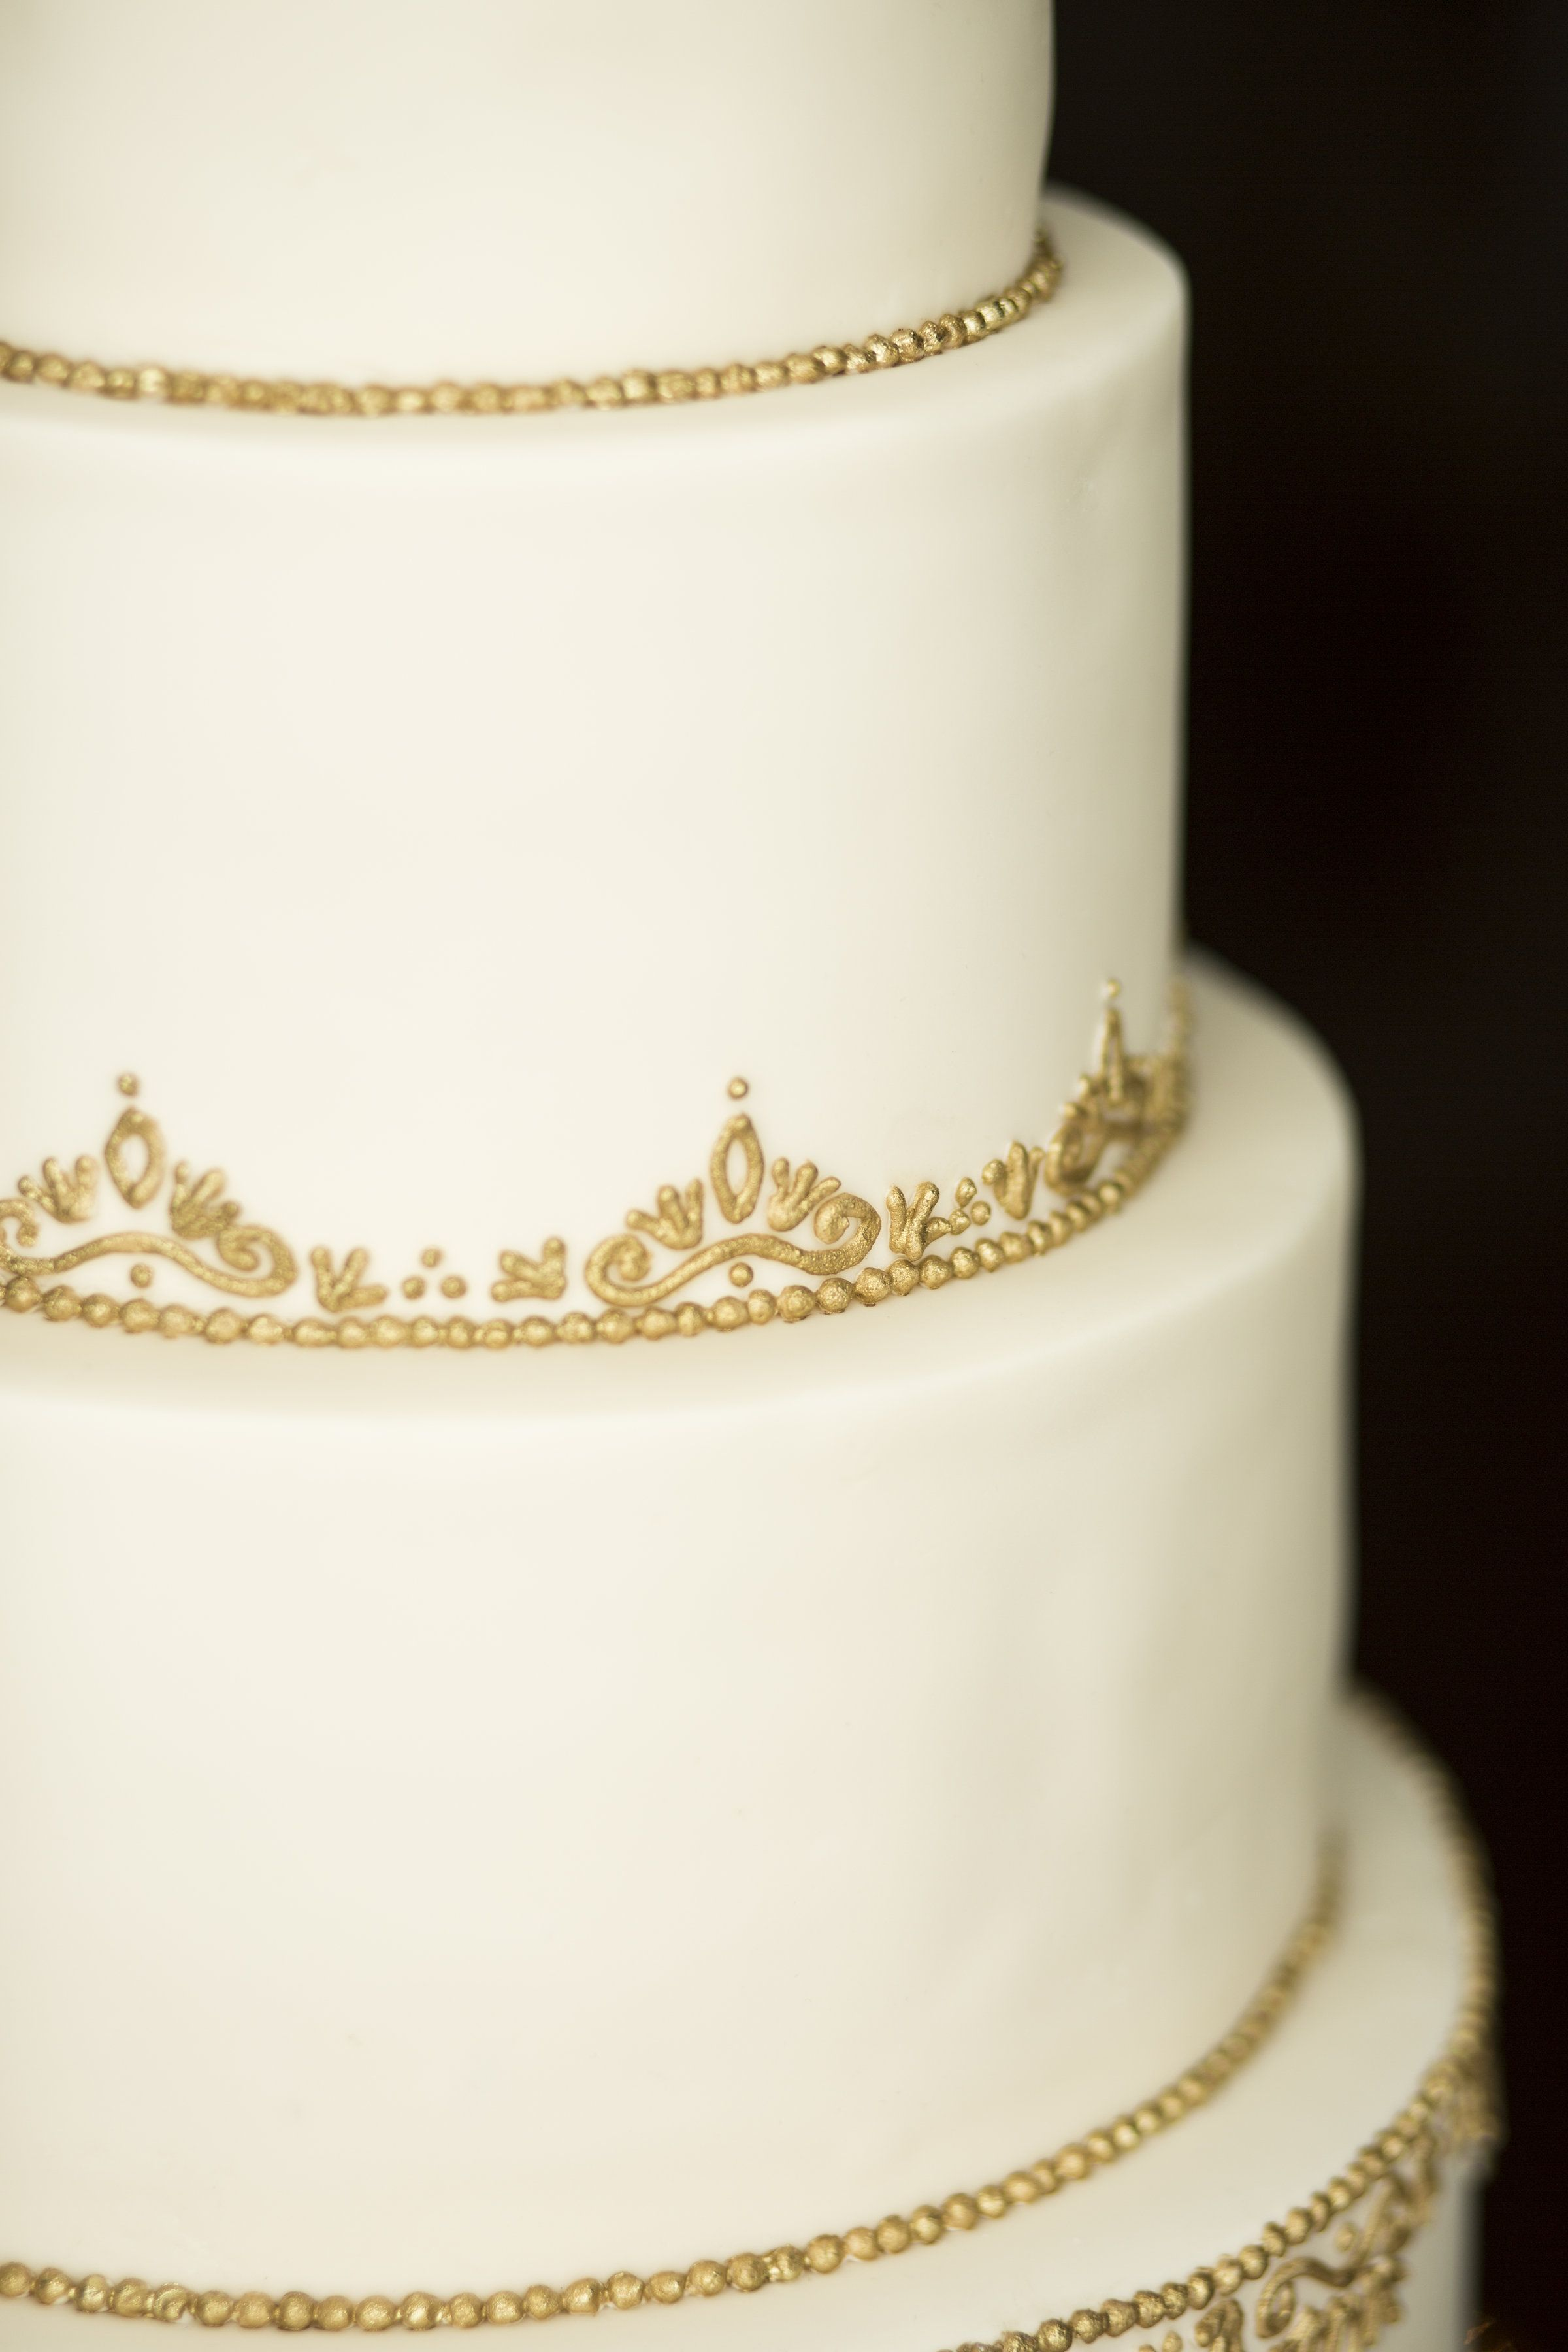 The Cake Flower Ivory And Gold Wedding Filigree Was Hand Piped With Royal Icing Then Painted Rolkem Super Mixed Vodka